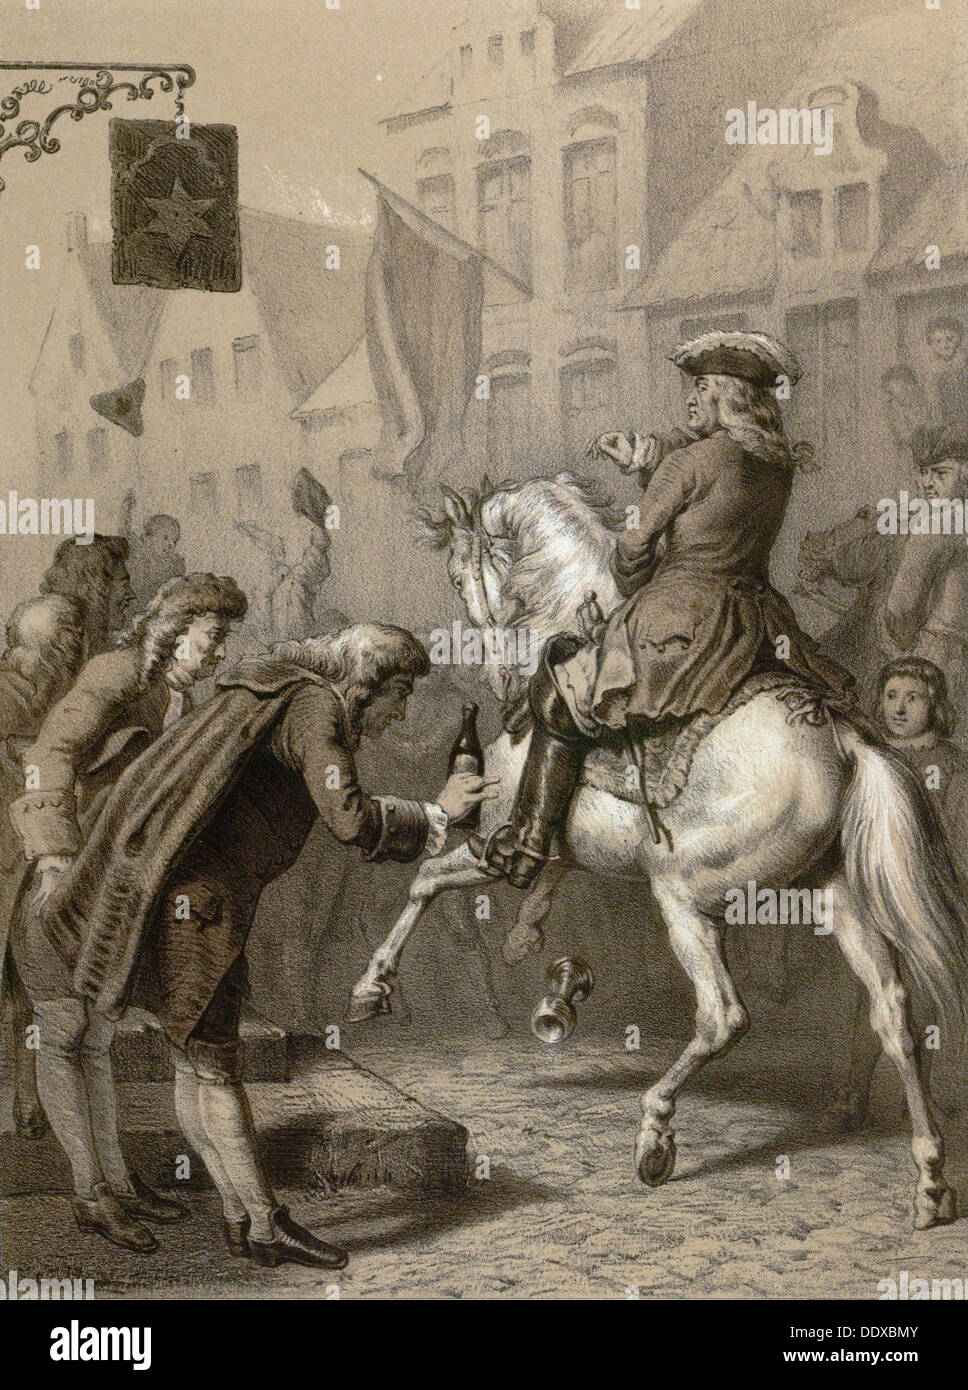 Grunberger wine, Silezien, Poland, bottle, glass, horse, town, food and drink, liszt gourmet archive, 19th century - Stock Image